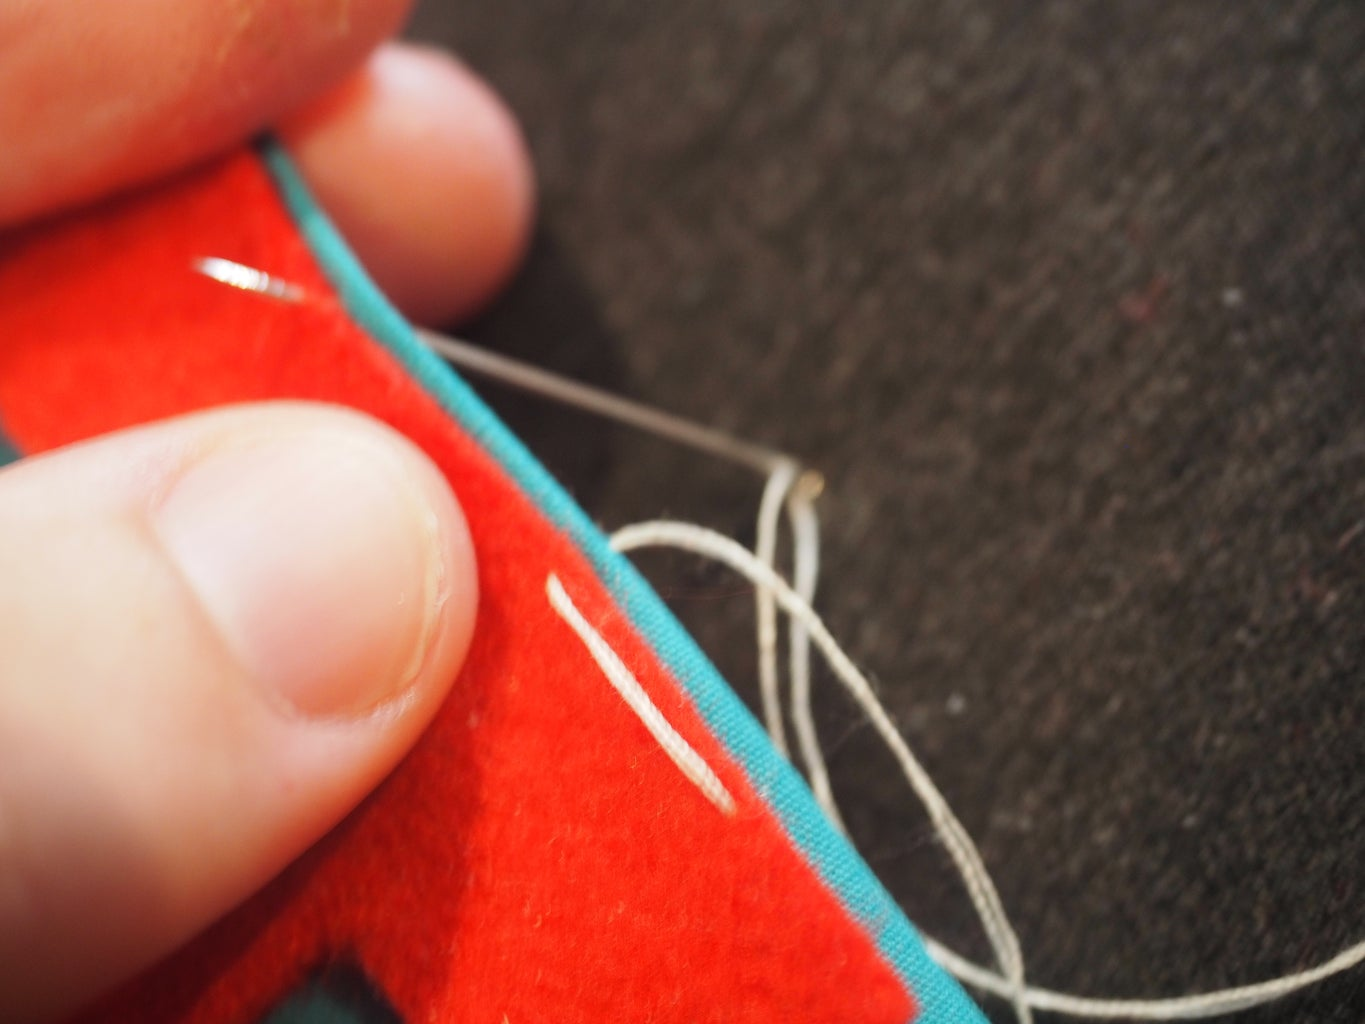 Sew Light Thread to Hold in Place